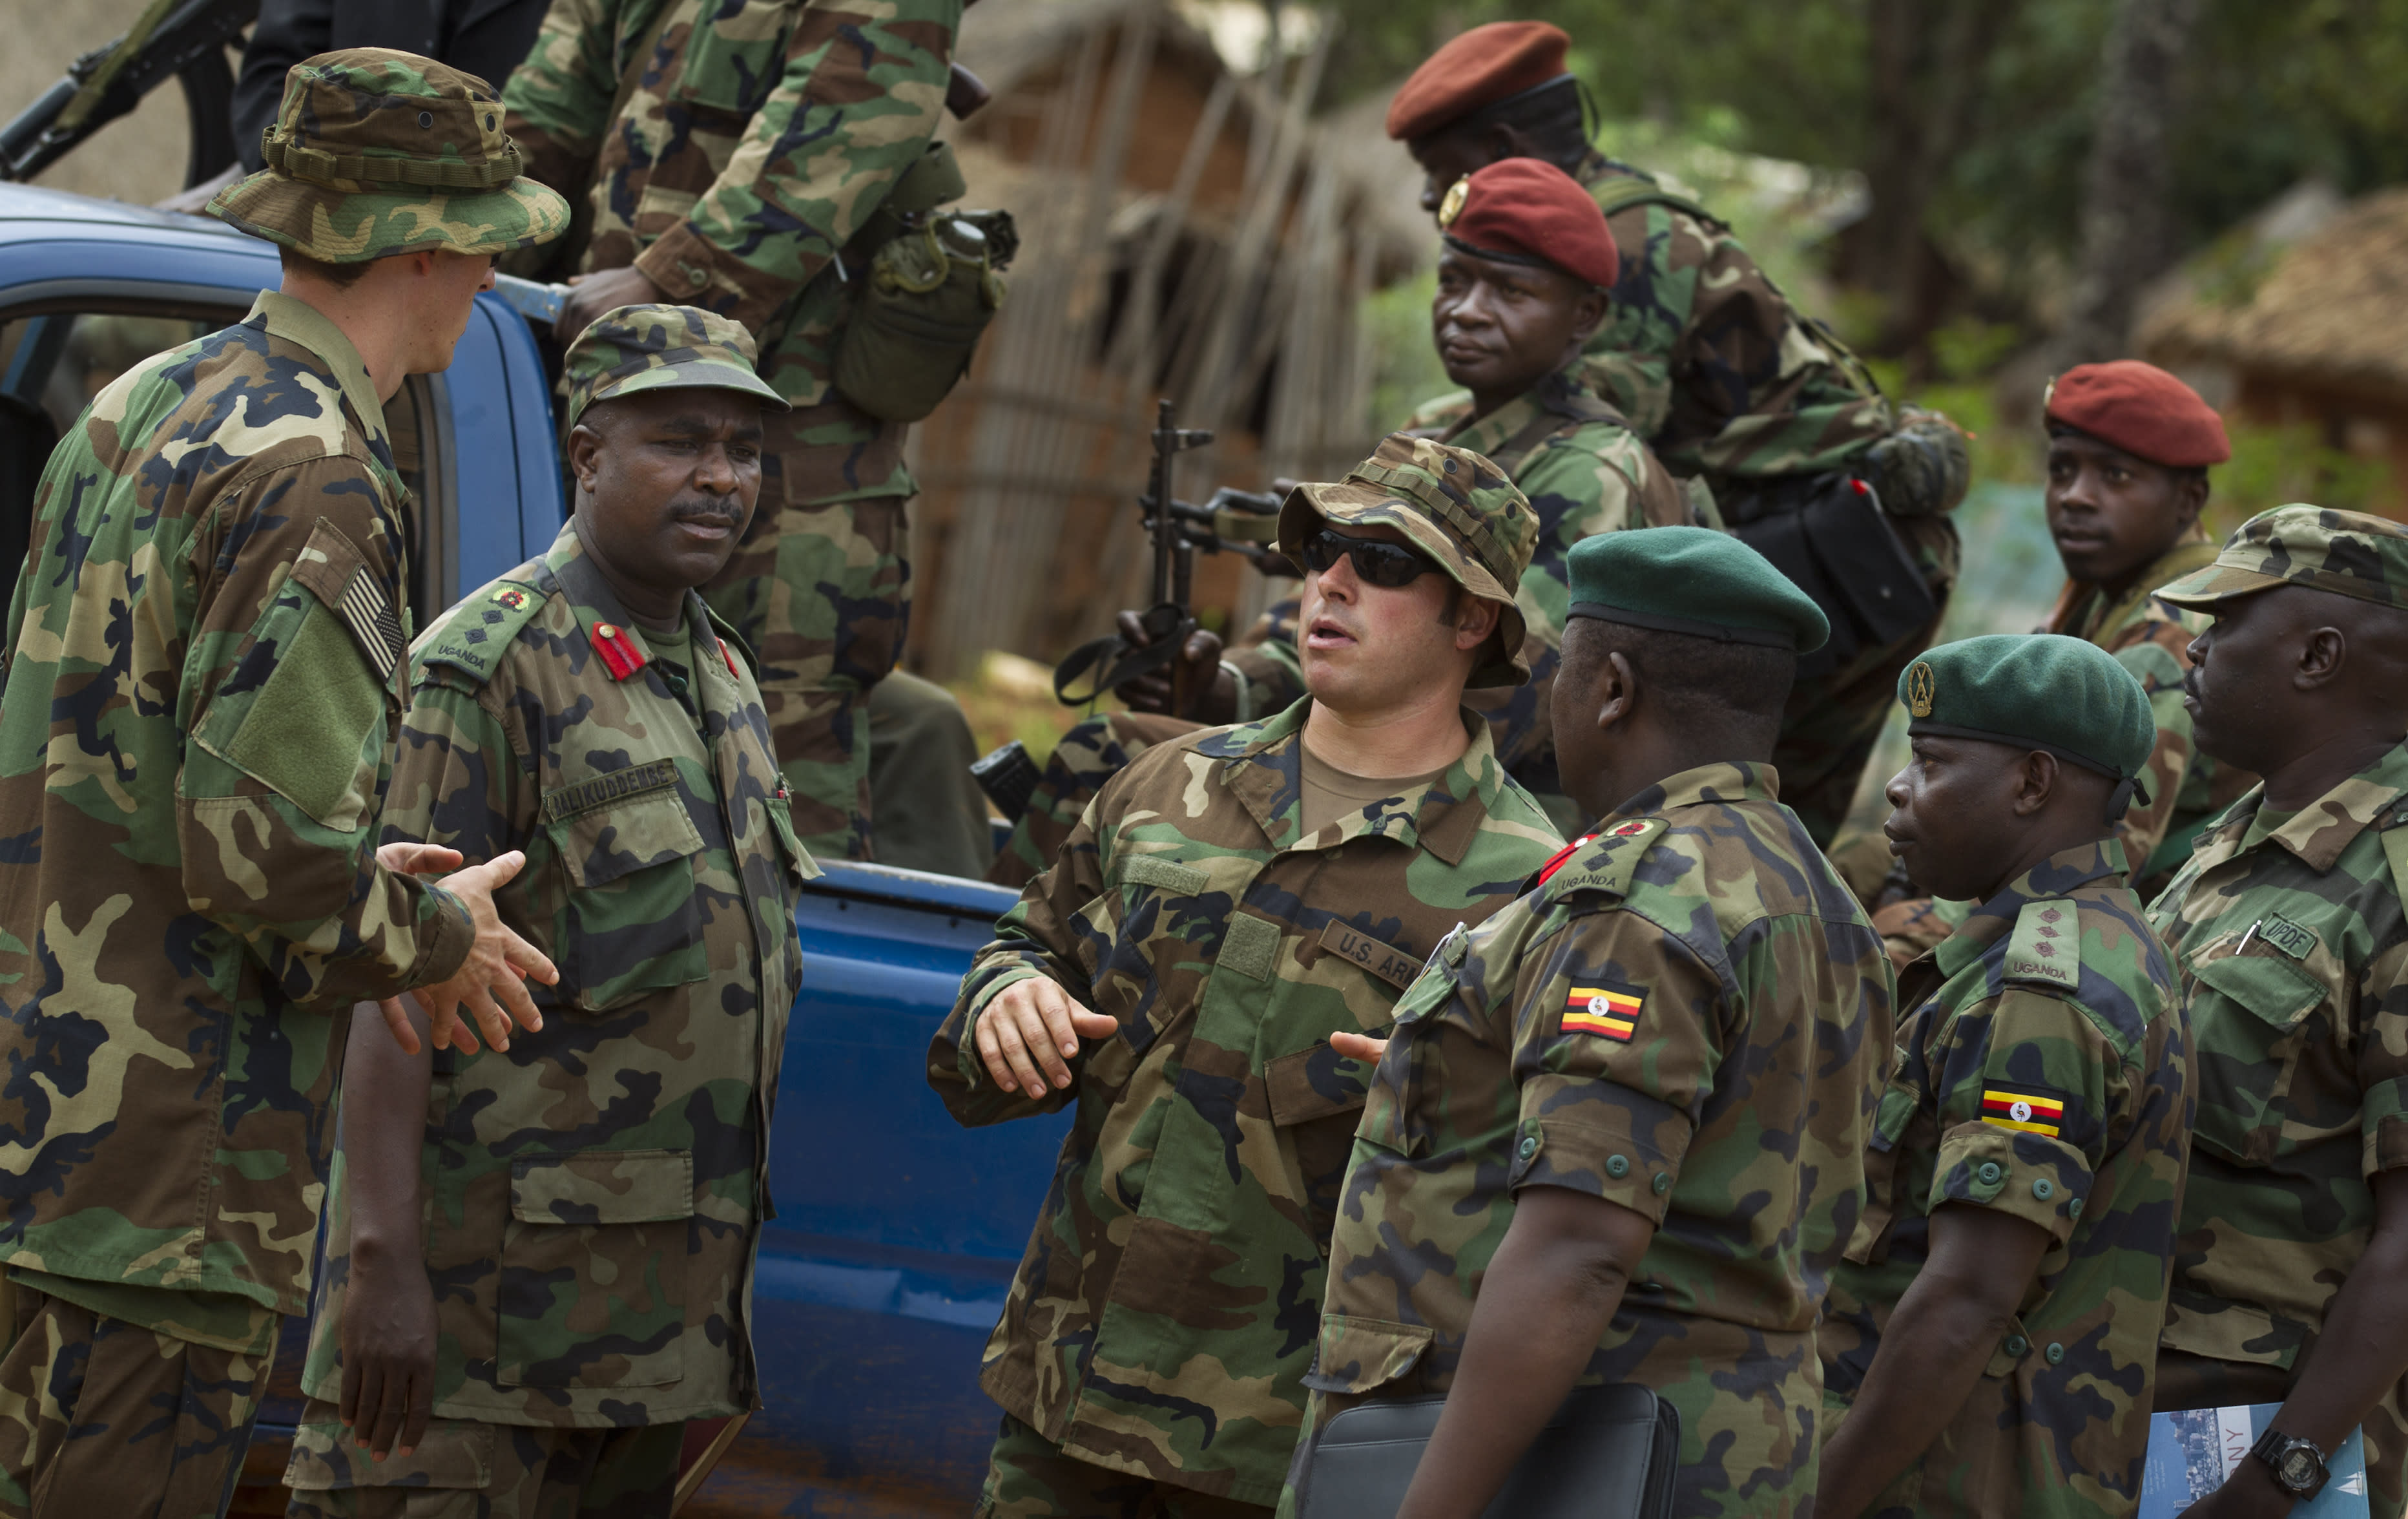 U.S. Army special forces Master Sergeant Eric, center, who would only give his first name in accordance with special forces security guidelines, speaks with troops from the Central African Republic and Uganda, in Obo, Central African Republic, Sunday, April 29, 2012. Obo was the first place in the Central African Republic that Joseph Kony's Lord's Resistance Army (LRA) attacked in 2008 and today it's one of four forward operating locations where U.S. special forces have paired up with local troops and Ugandan soldiers to seek out Kony. (AP Photo/Ben Curtis)